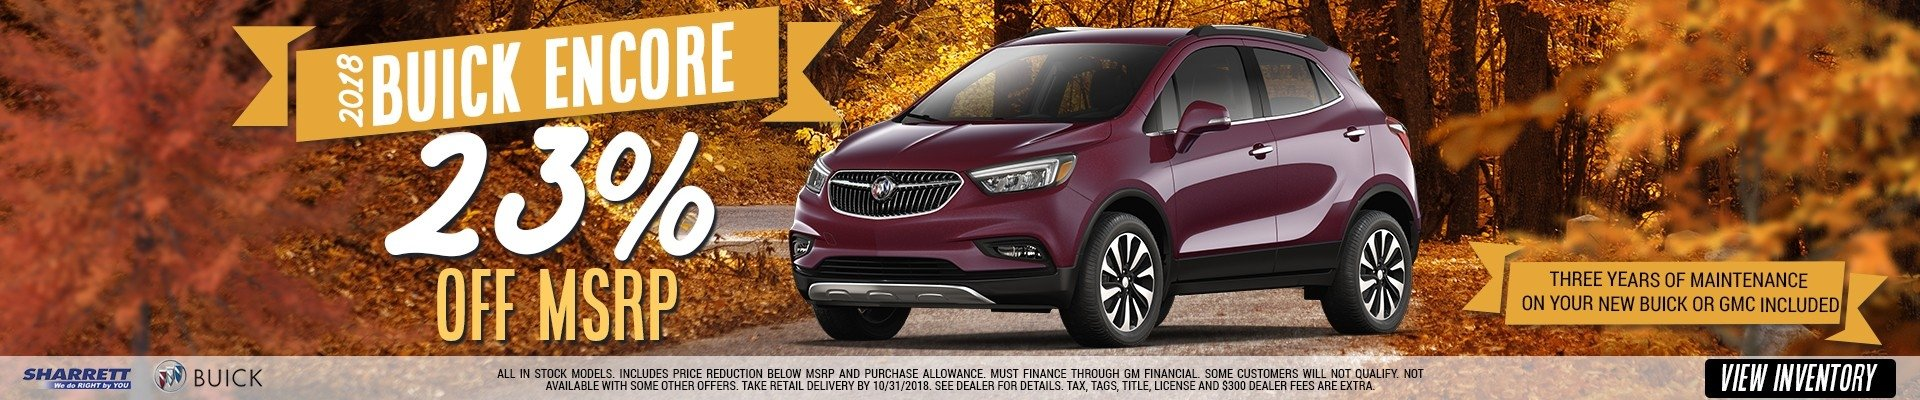 Get 23% off MSRP on a new 2018 Buick Encore